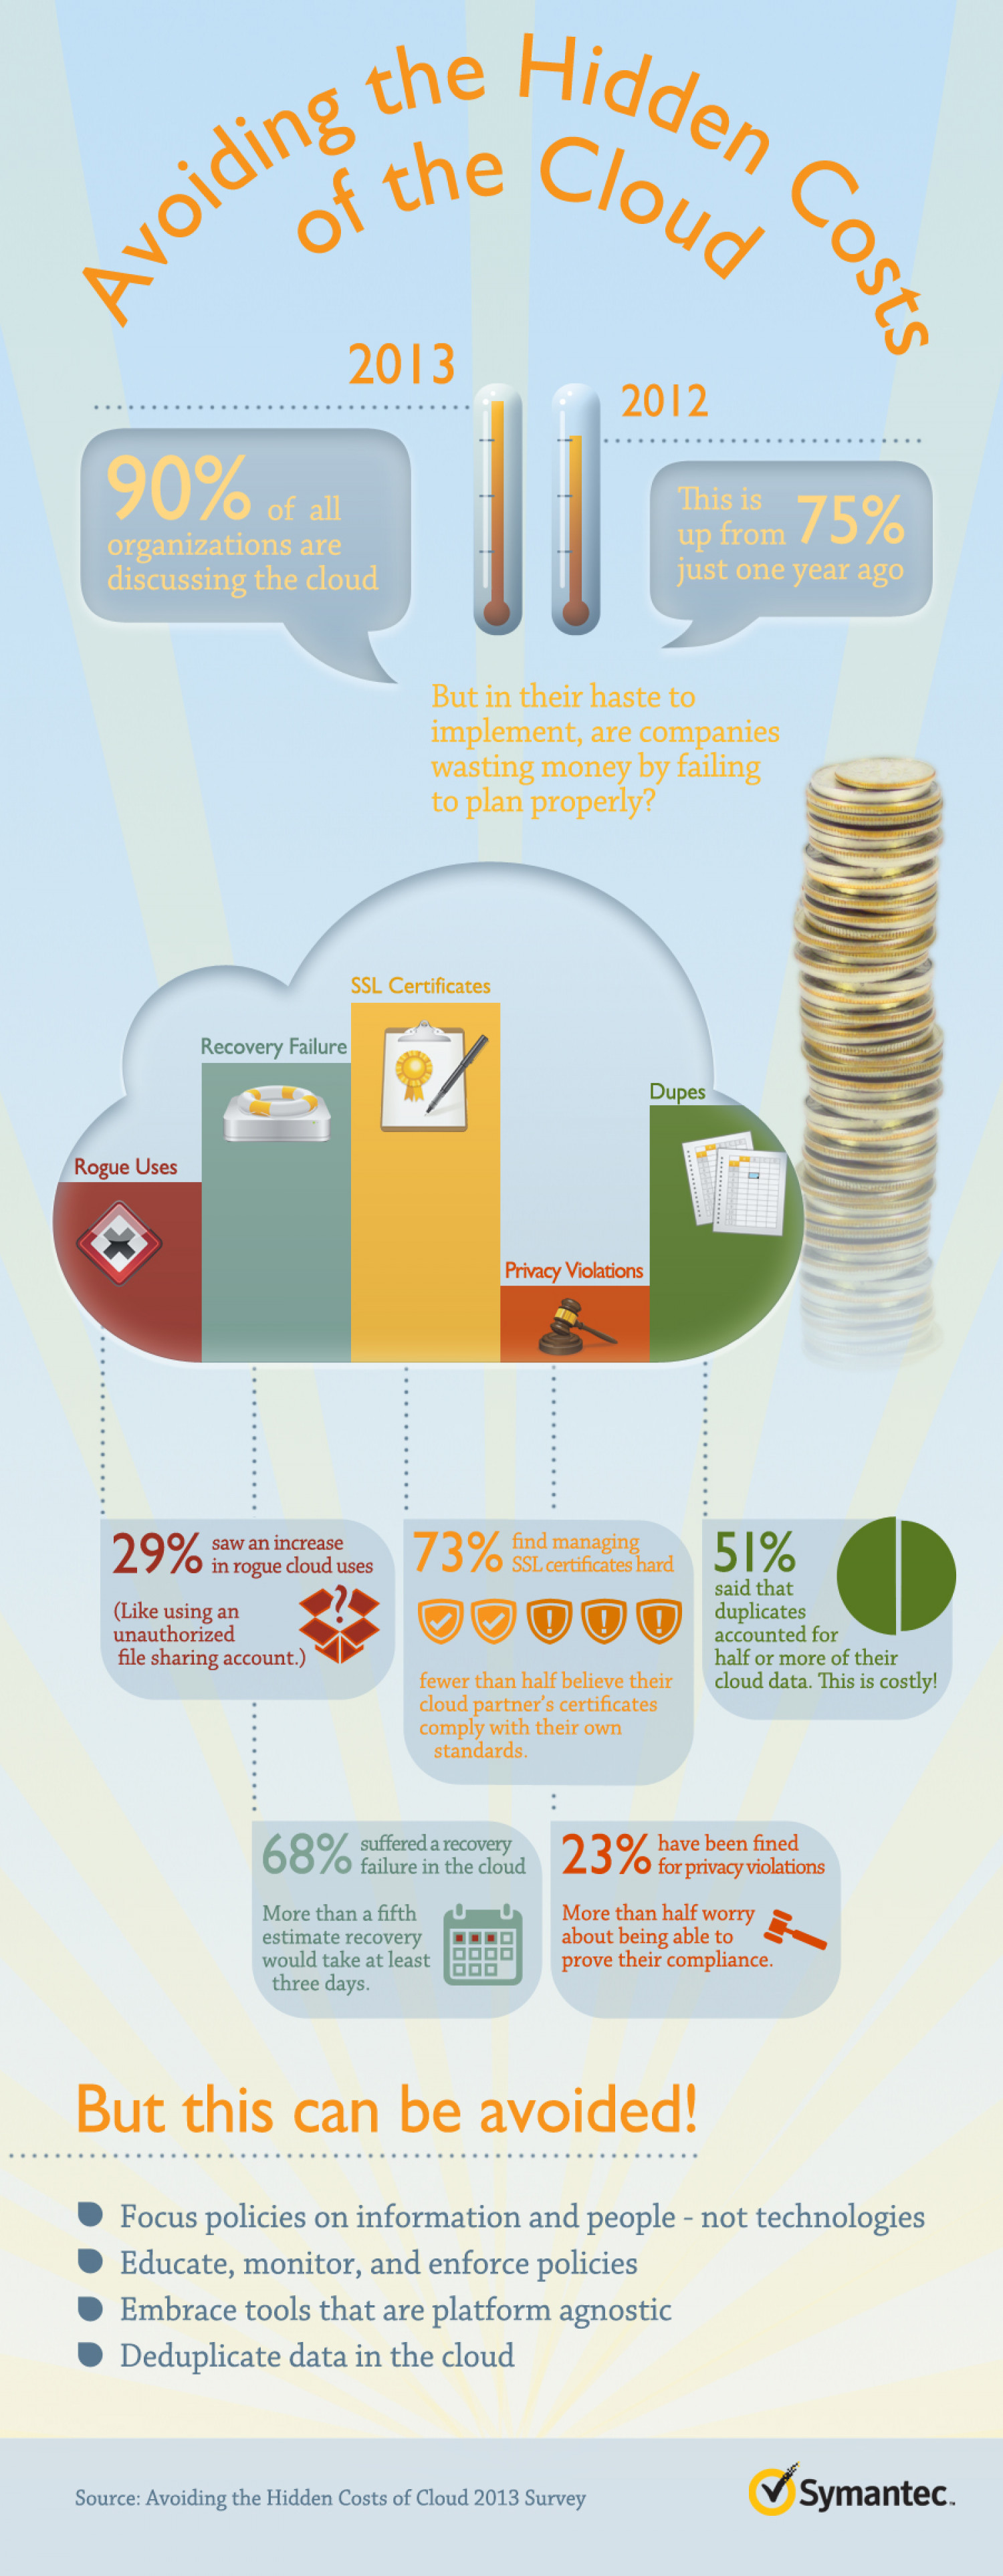 Avoiding the Hidden Costs of the Cloud Infographic